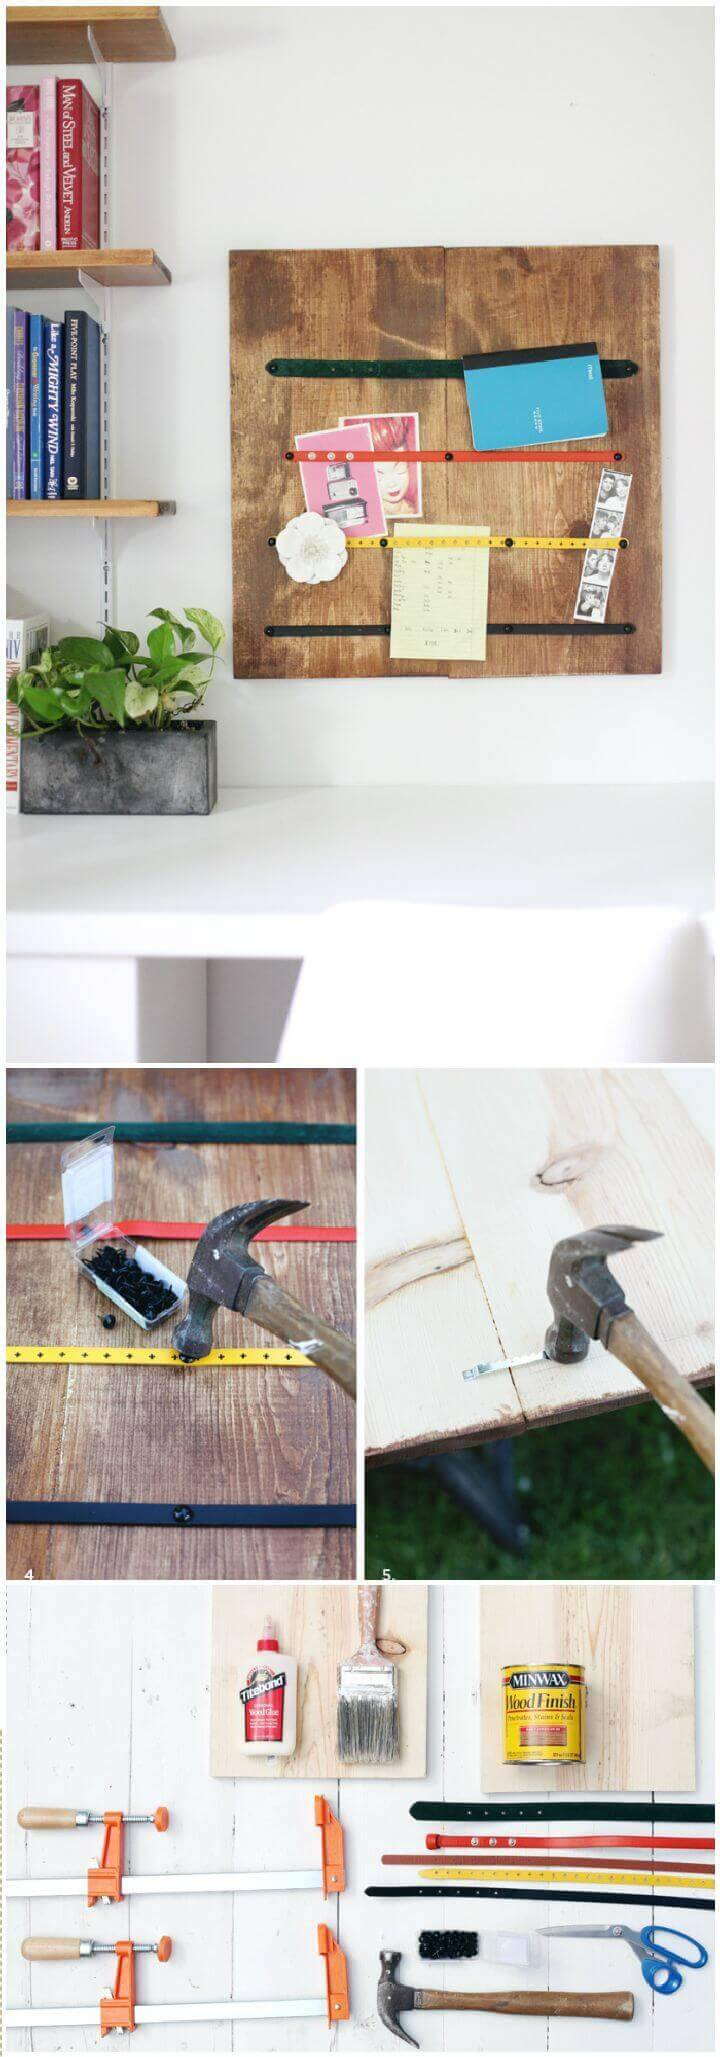 Make This Belt Strap Memo Board DIY